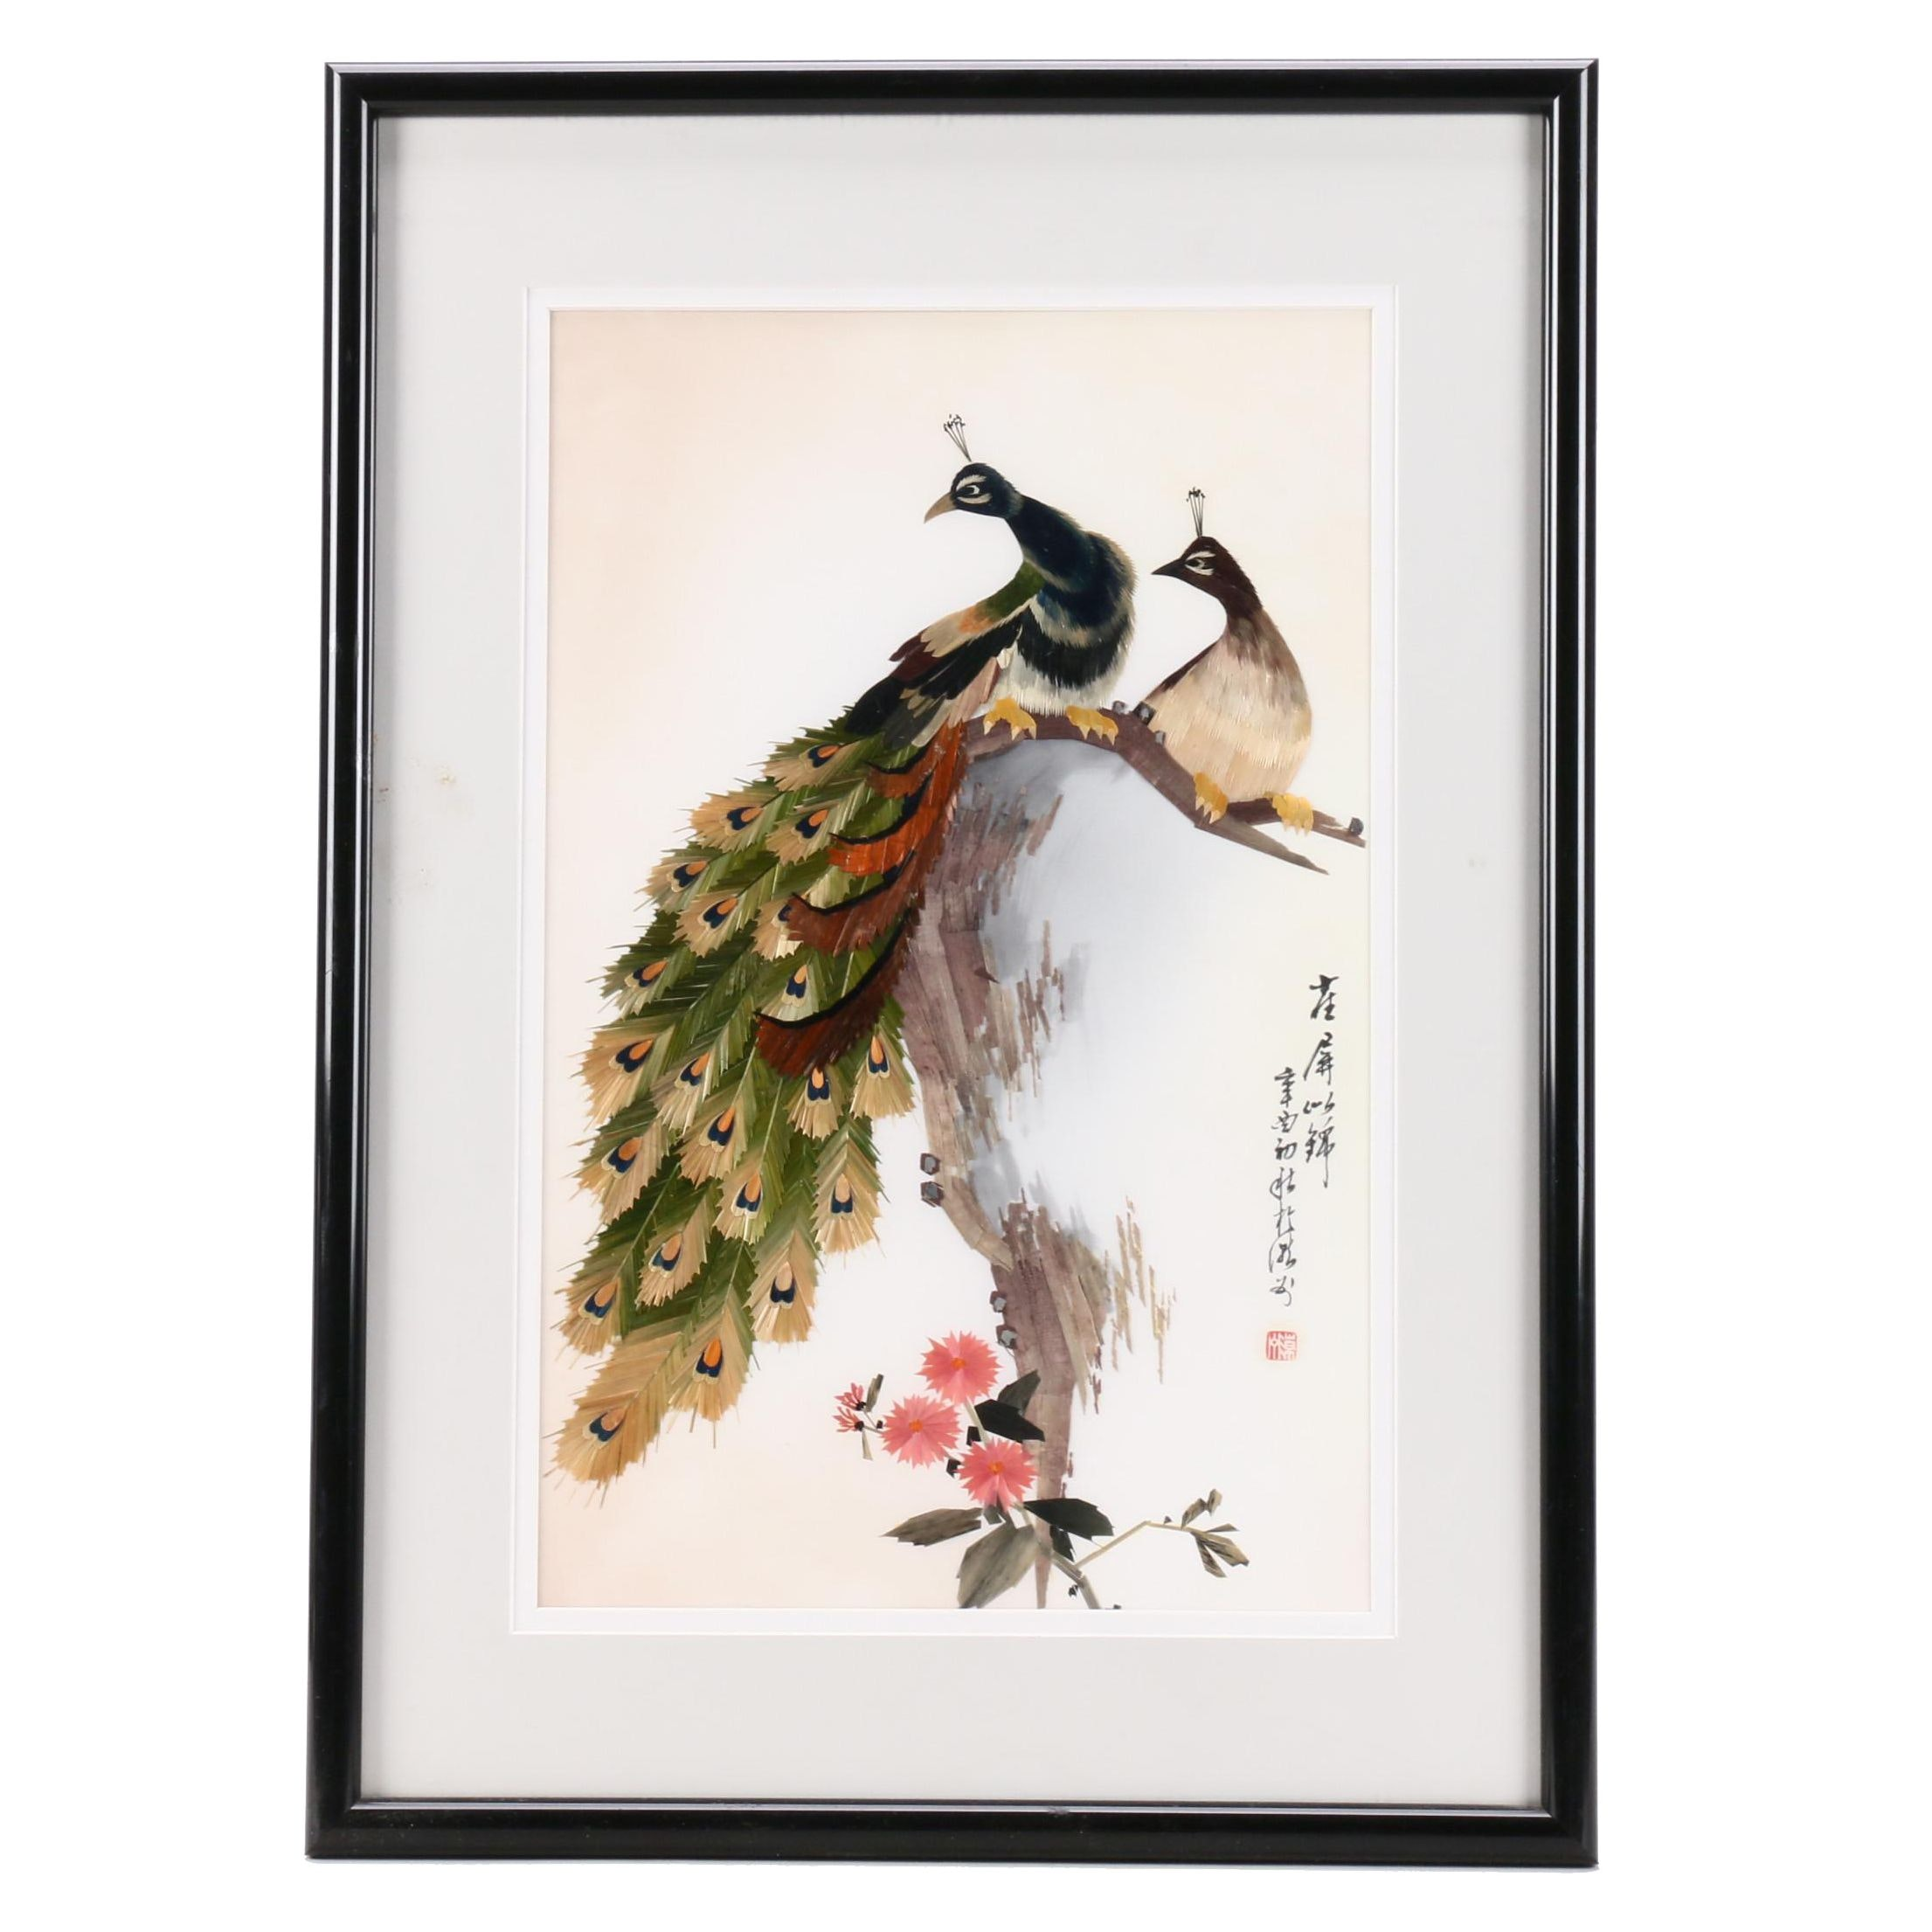 Chinese Mixed Media Collage of Peacocks Perched on Branch